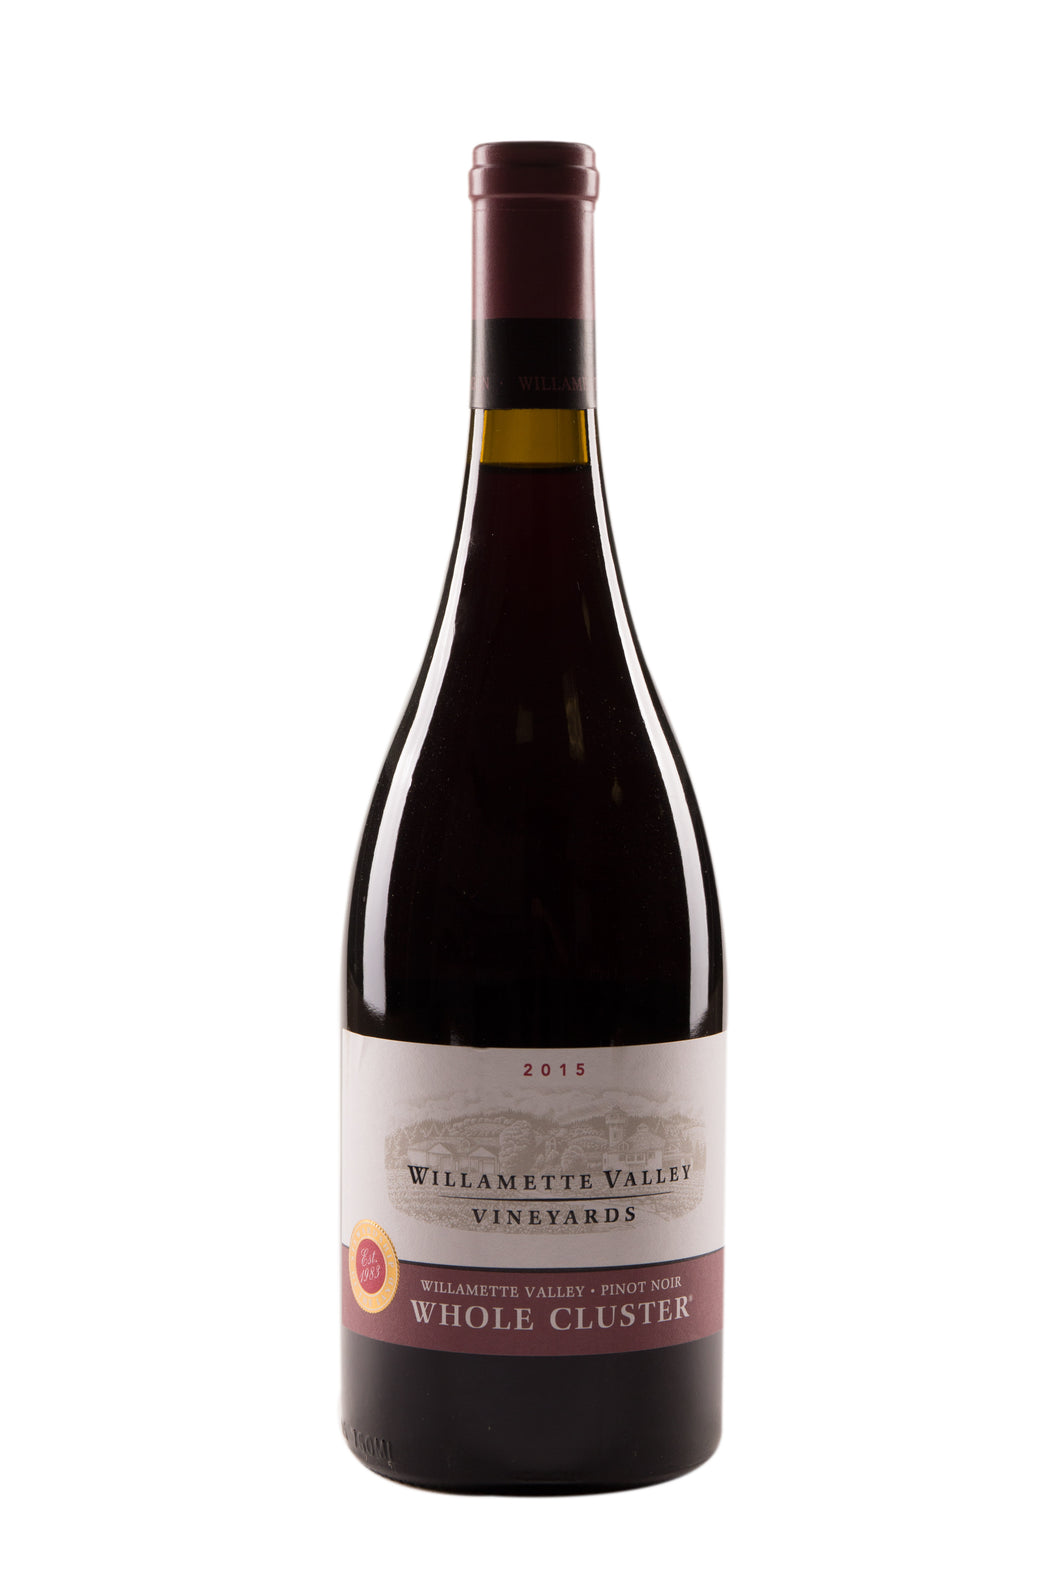 Willamette Whole Cluster Pinot Noir